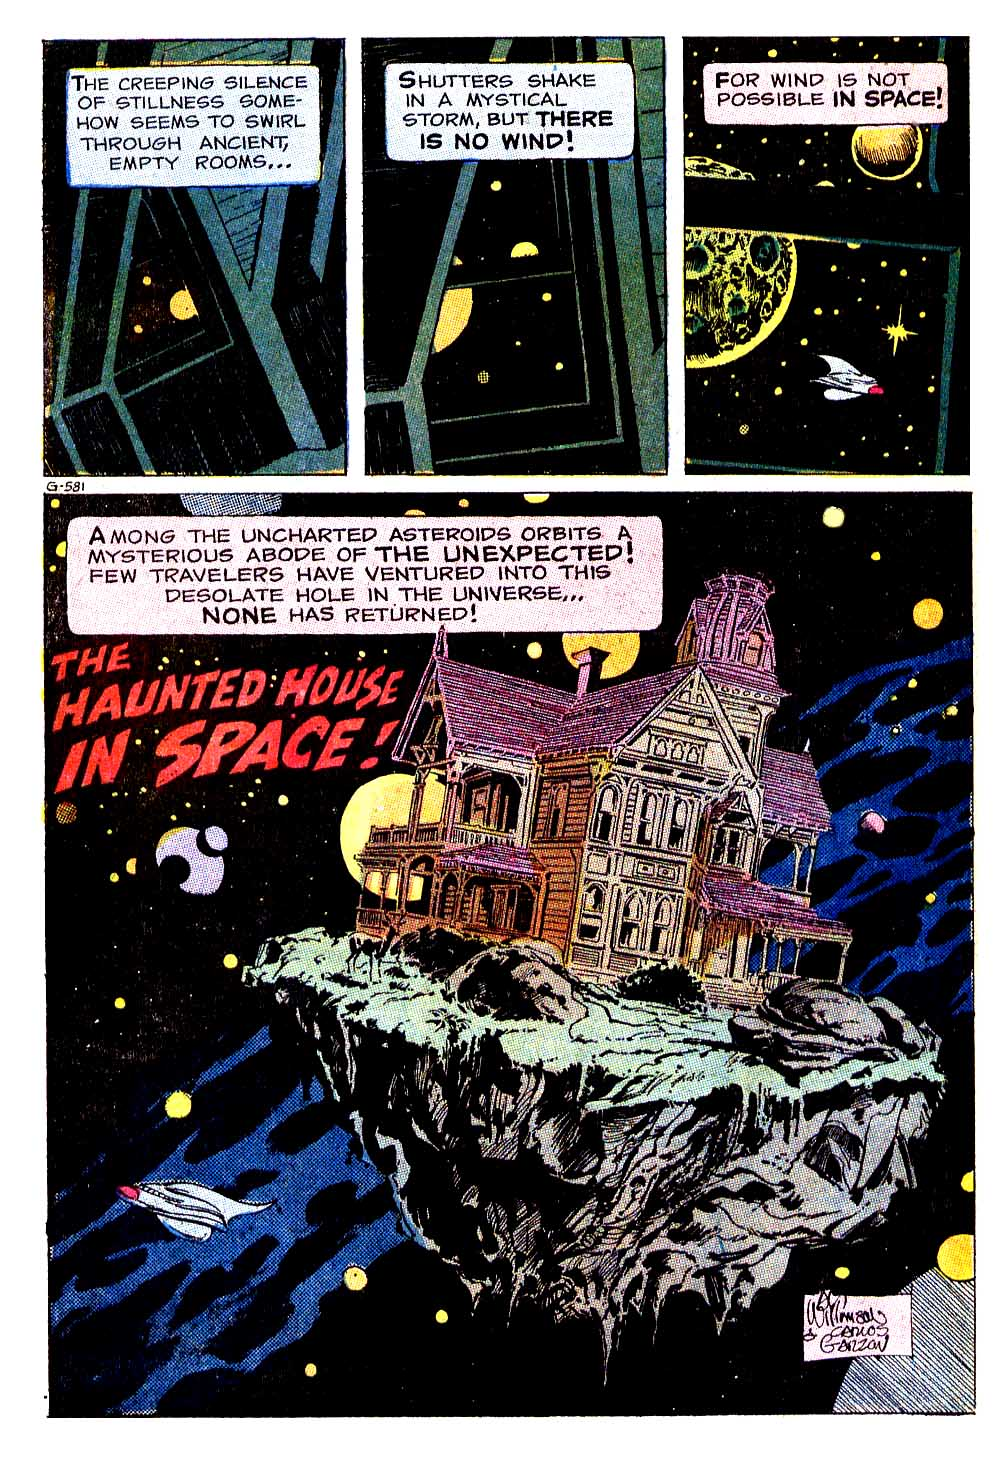 The Haunted House in Space – Al Williamson and Carlos Garzon 1971